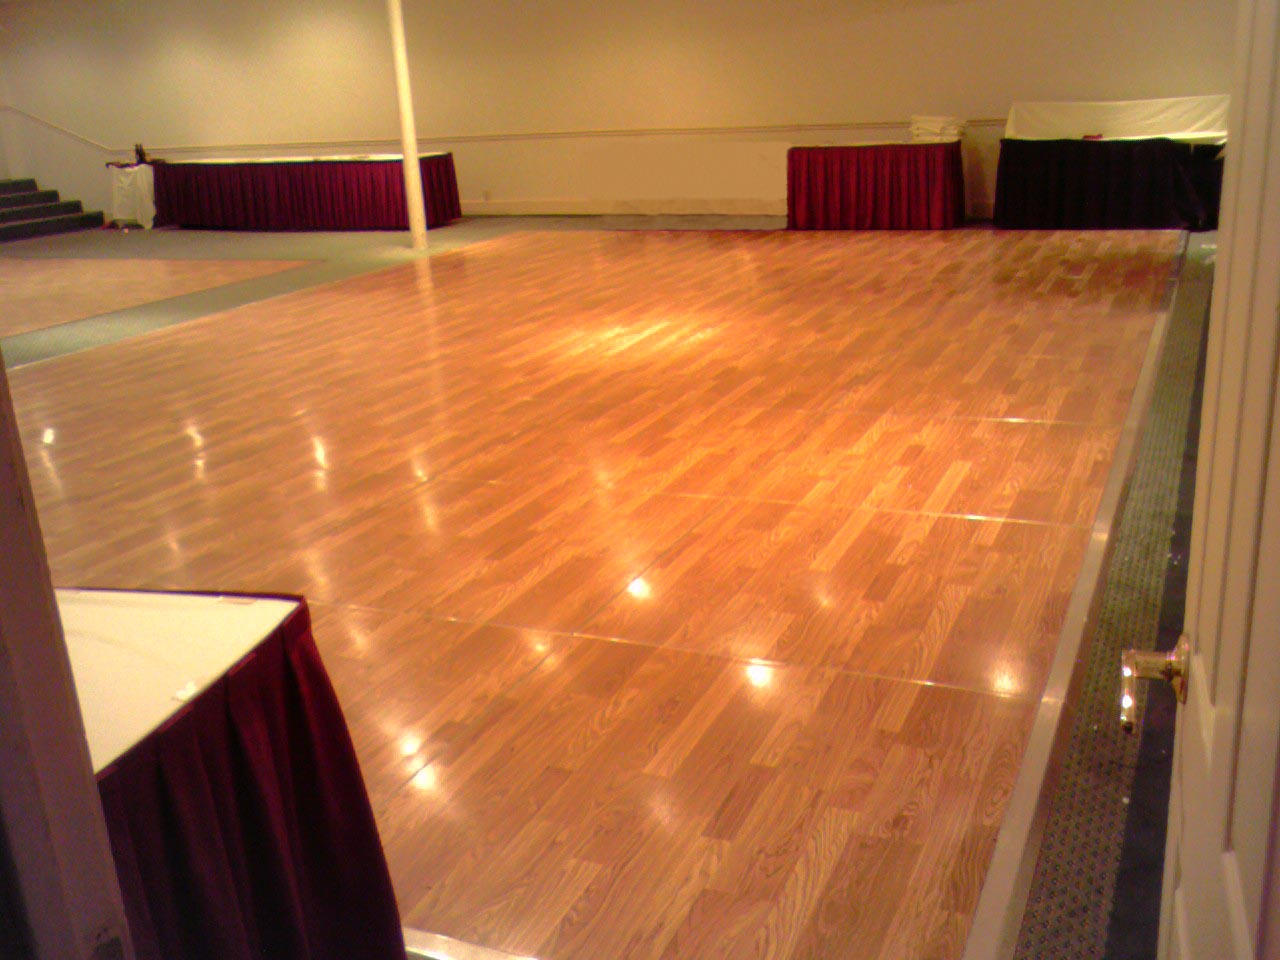 Dance floor rental for On the floor on the floor